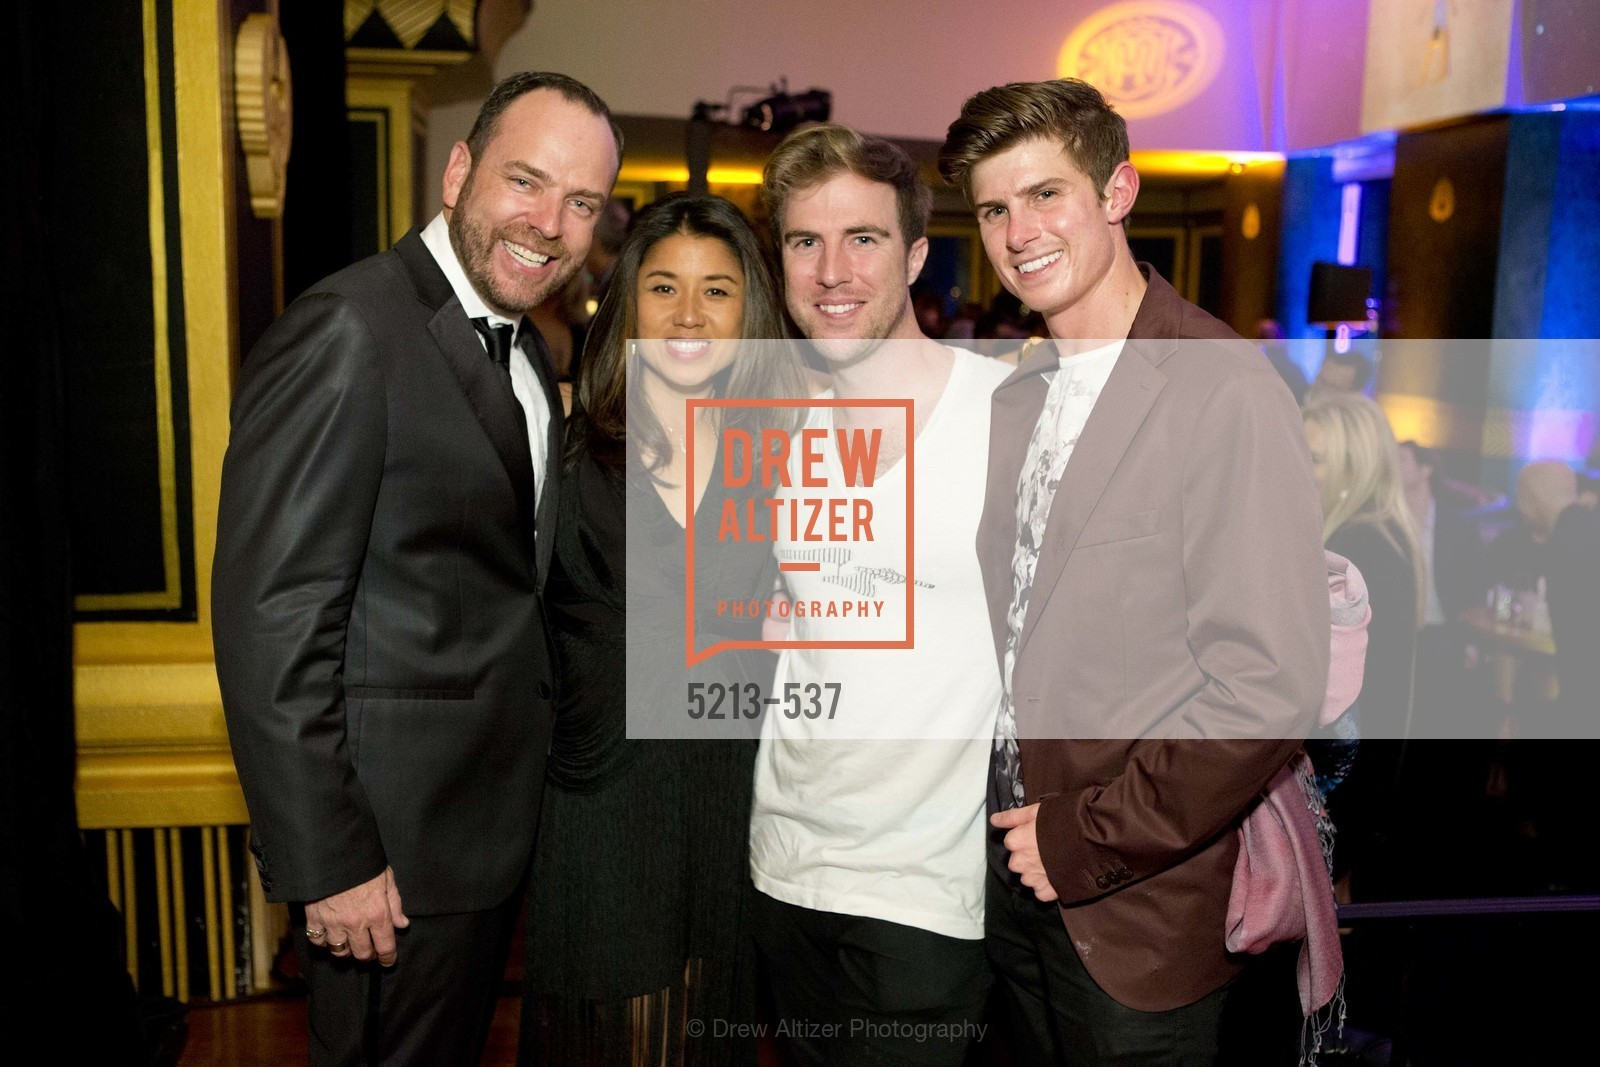 Steven Flowers, Jennifer Flower, Matthew Kimball, Michael Roderick, TOP OF THE MARK'S 75TH Anniversary Party, US, November 7th, 2014,Drew Altizer, Drew Altizer Photography, full-service event agency, private events, San Francisco photographer, photographer California